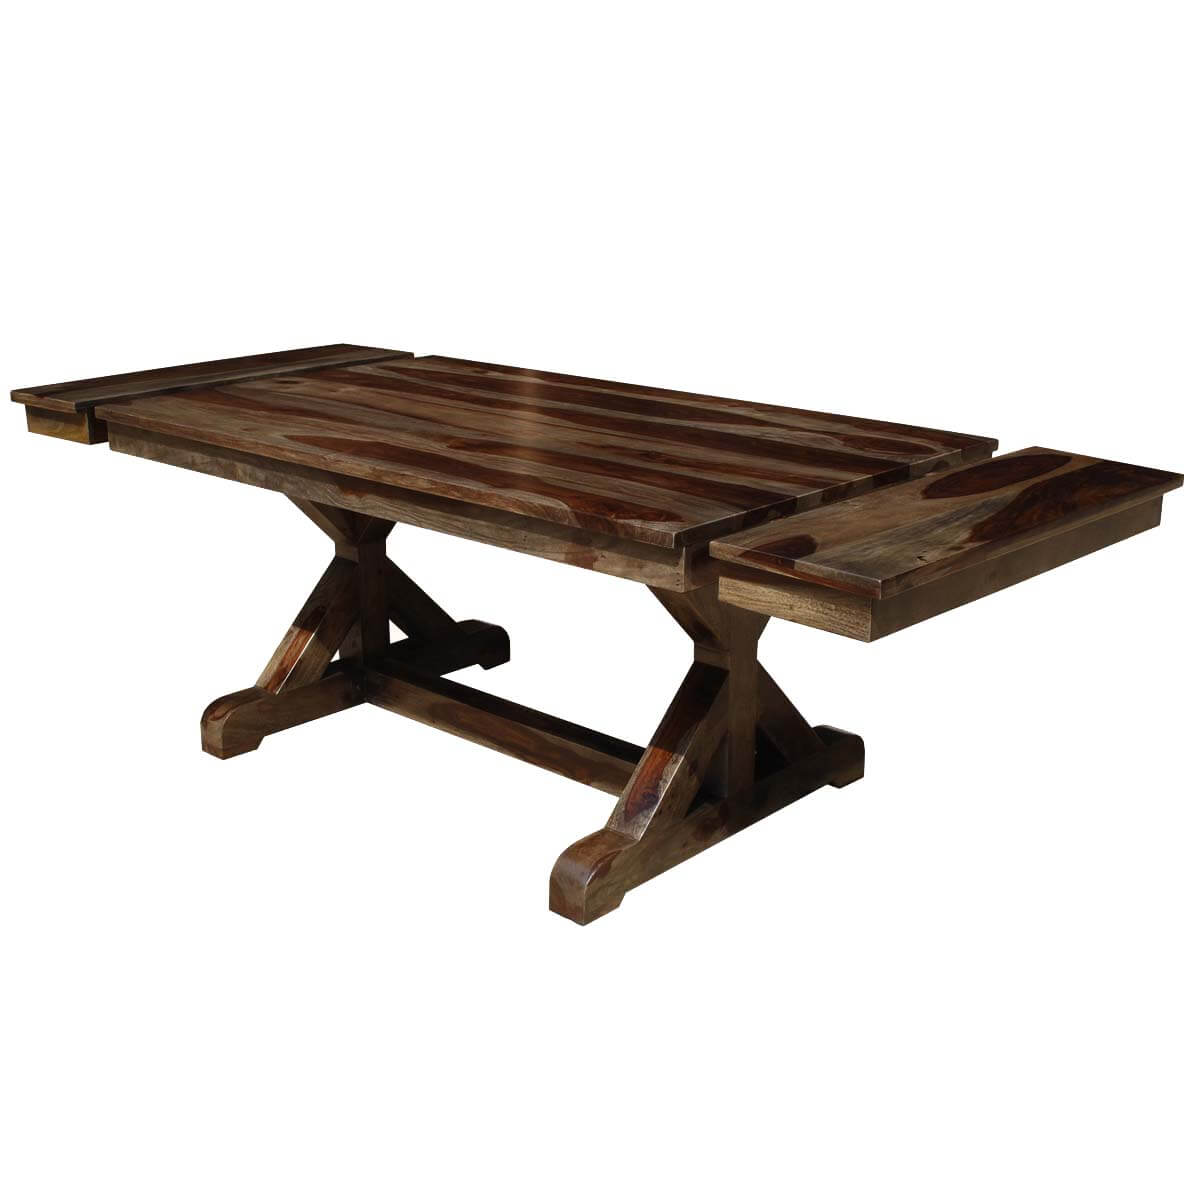 Wooden Dining Table Base ~ Antwerp base solid wood rustic extendable farmhouse